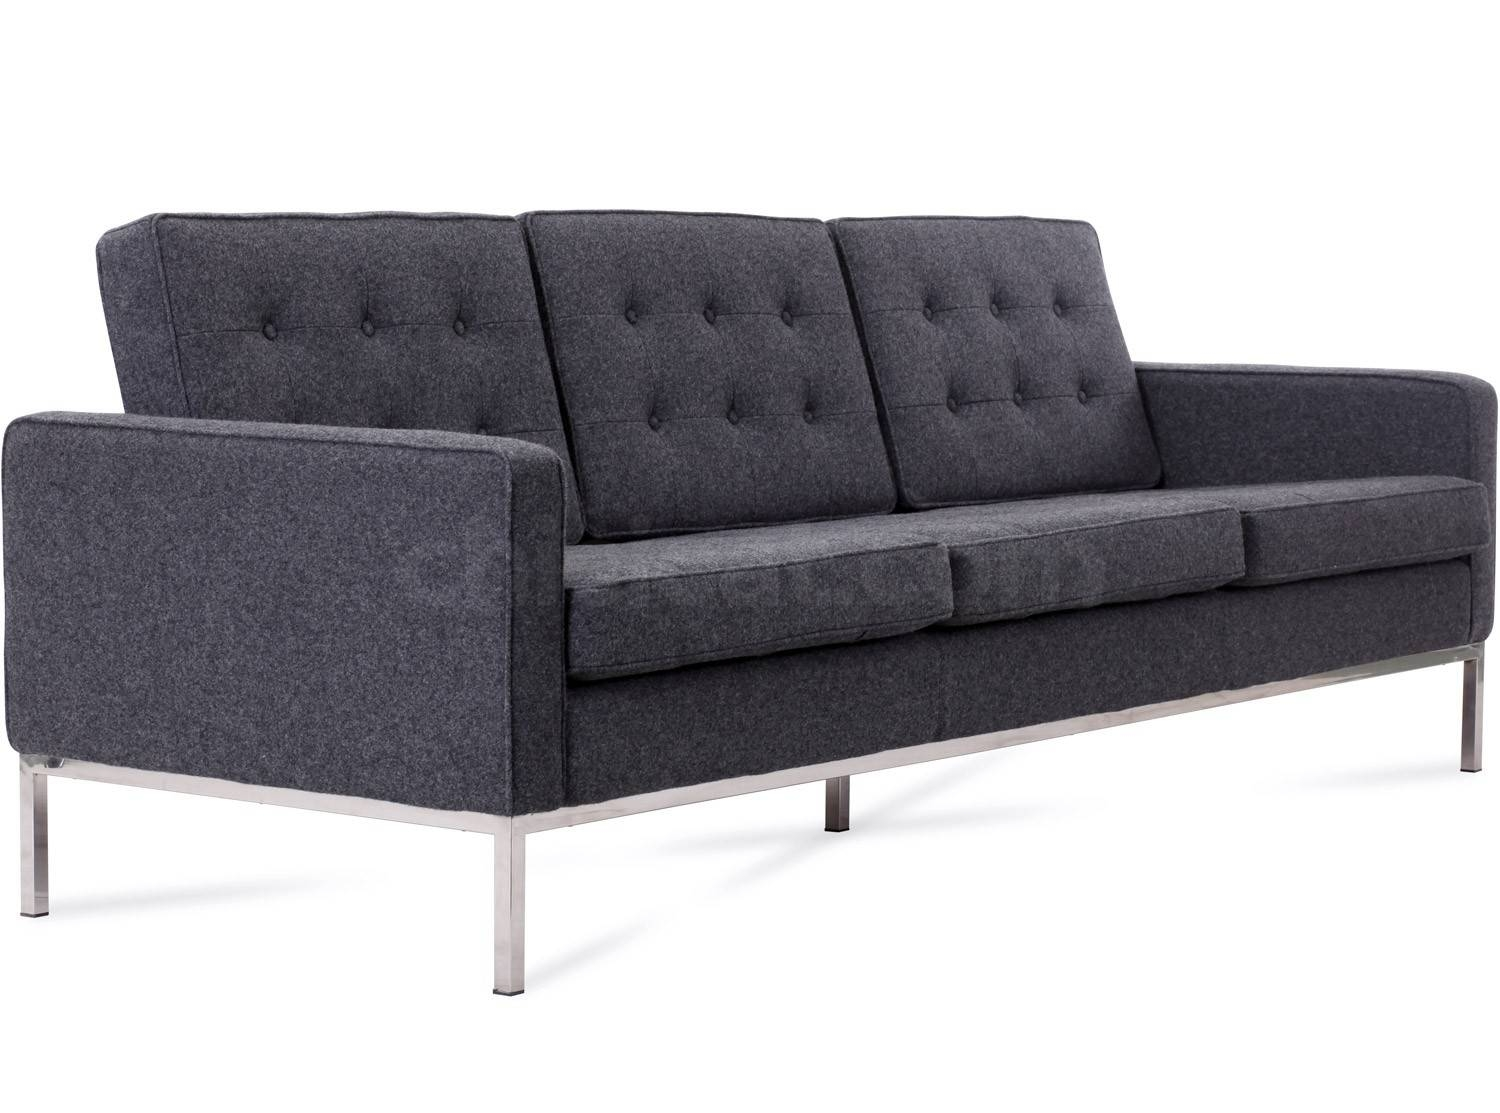 Florence Knoll Sofa 3 Seater Wool (Platinum Replica) throughout Florence Knoll Sofas (Image 10 of 15)